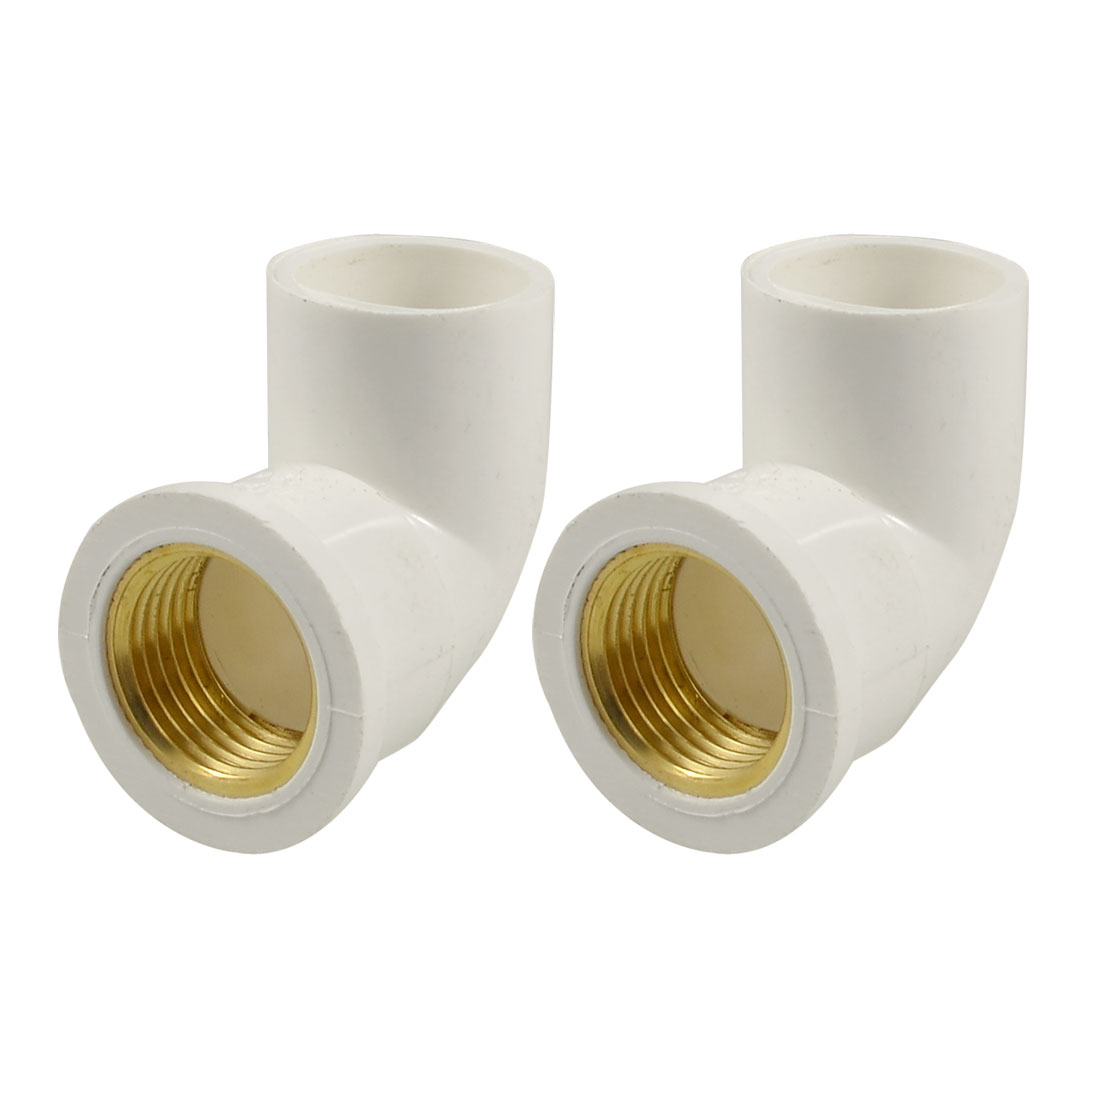 "1/2"" Brass Female Thread x 20mm PVC Slip Right Angle Pipe Elbow Coupler White 2 Pcs"